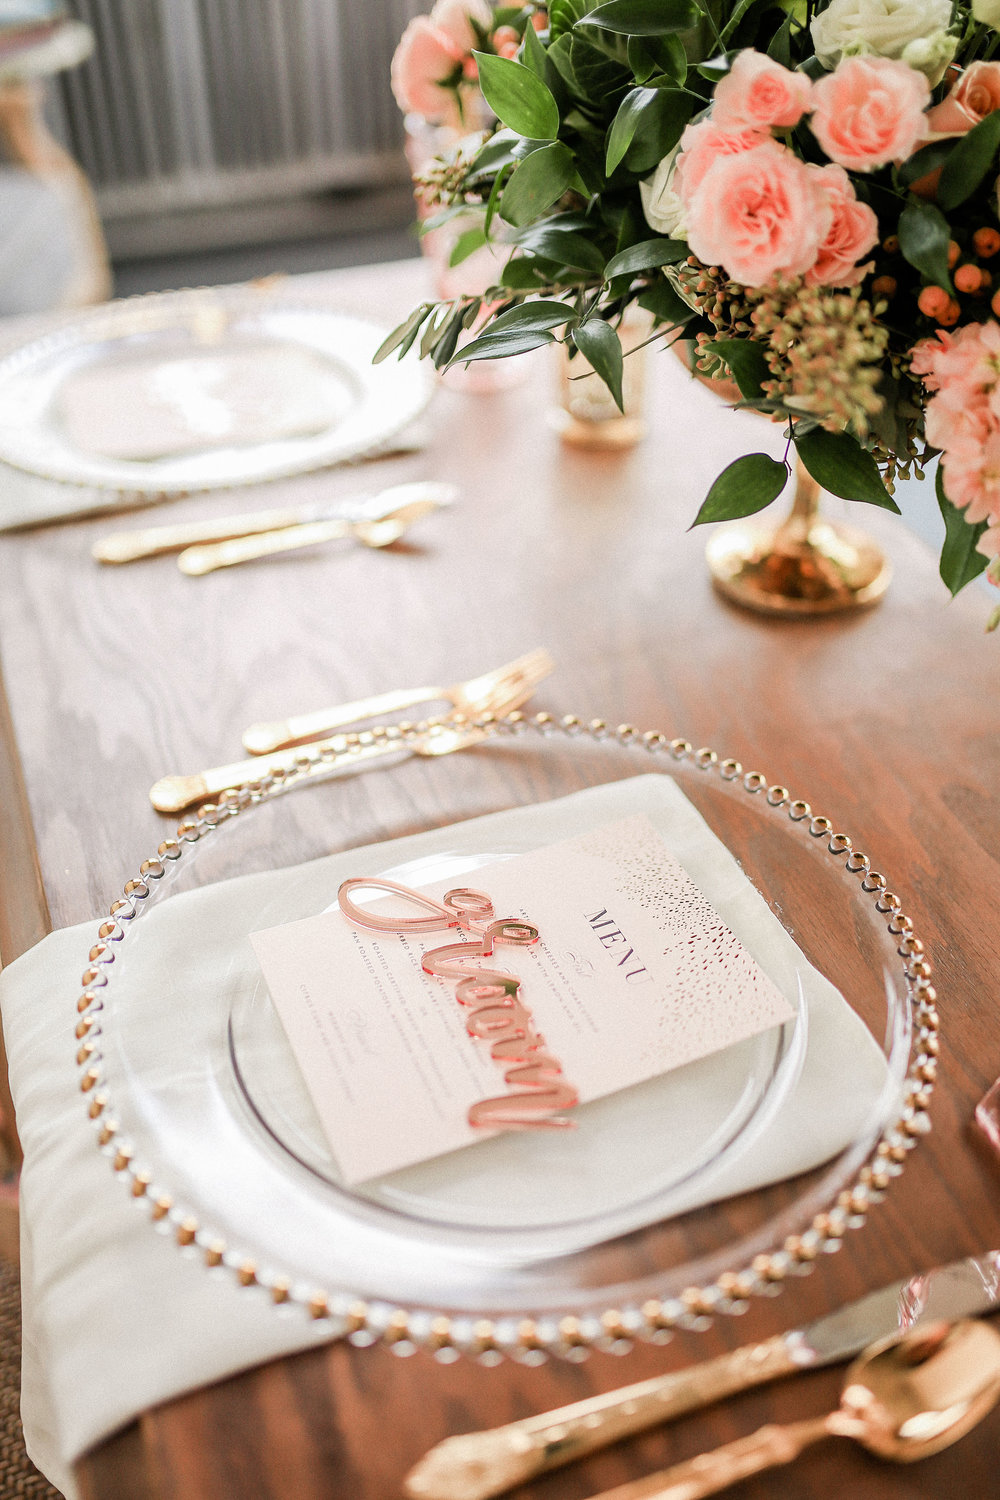 blush and white wedding - sweetheart table - wedding decor - wedding inspiration - dayton wedding planning - columbus wedding design